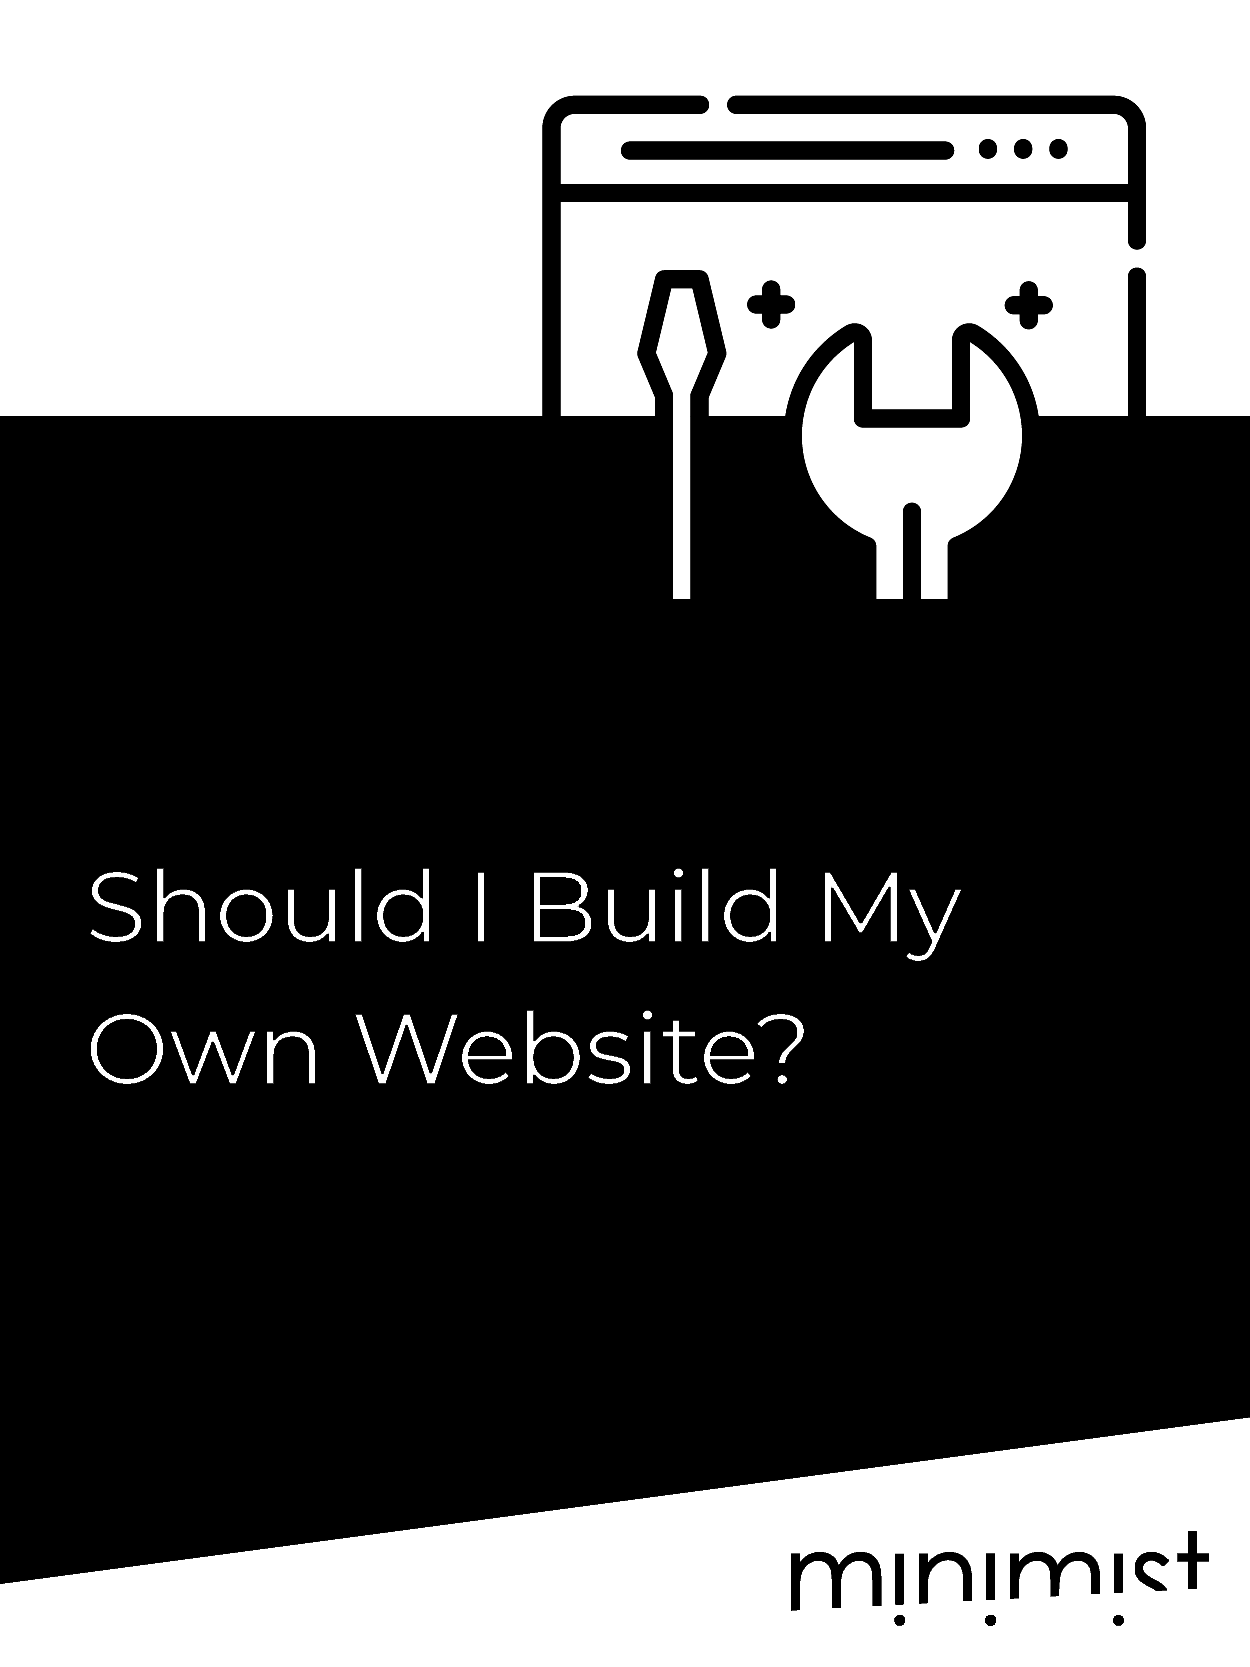 Should I build My Own Website?